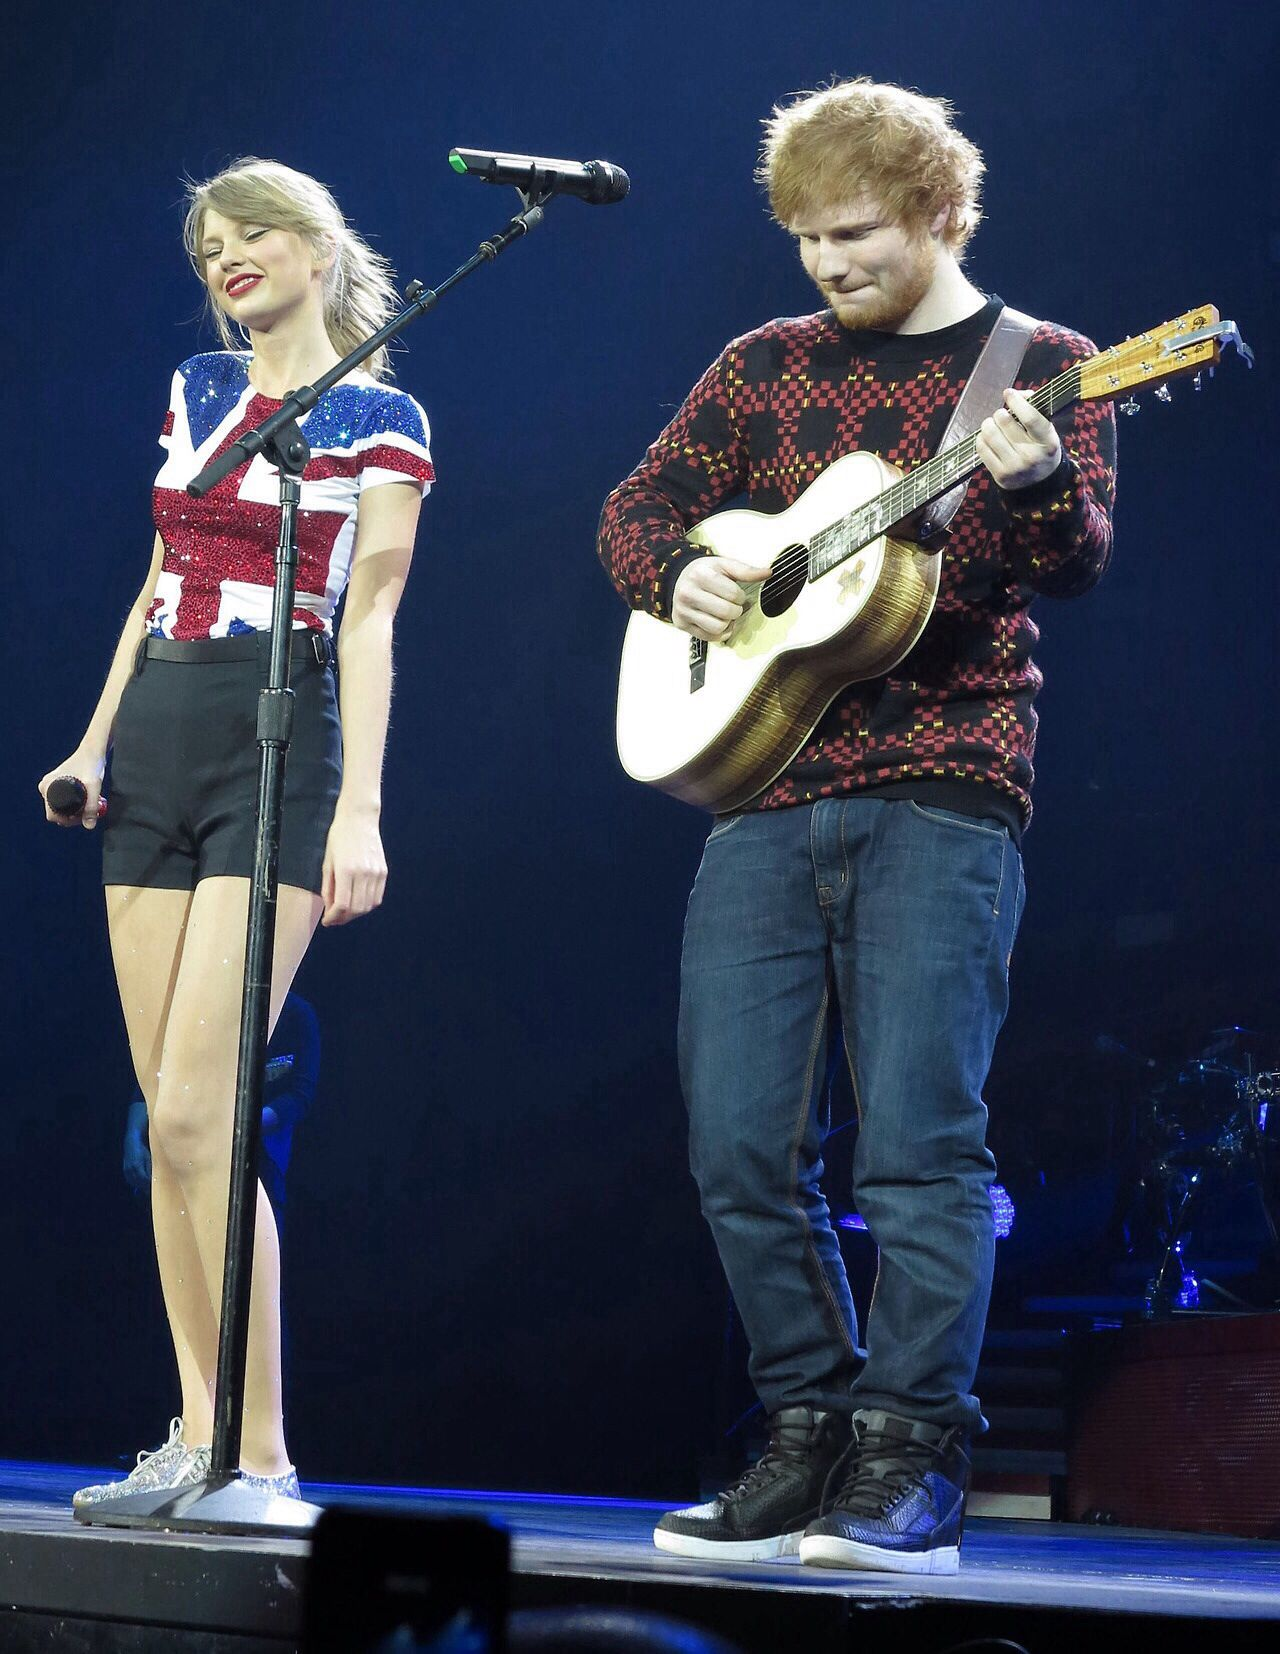 01 02 14 Red London Lego House With Special Guest Ed Sheeran